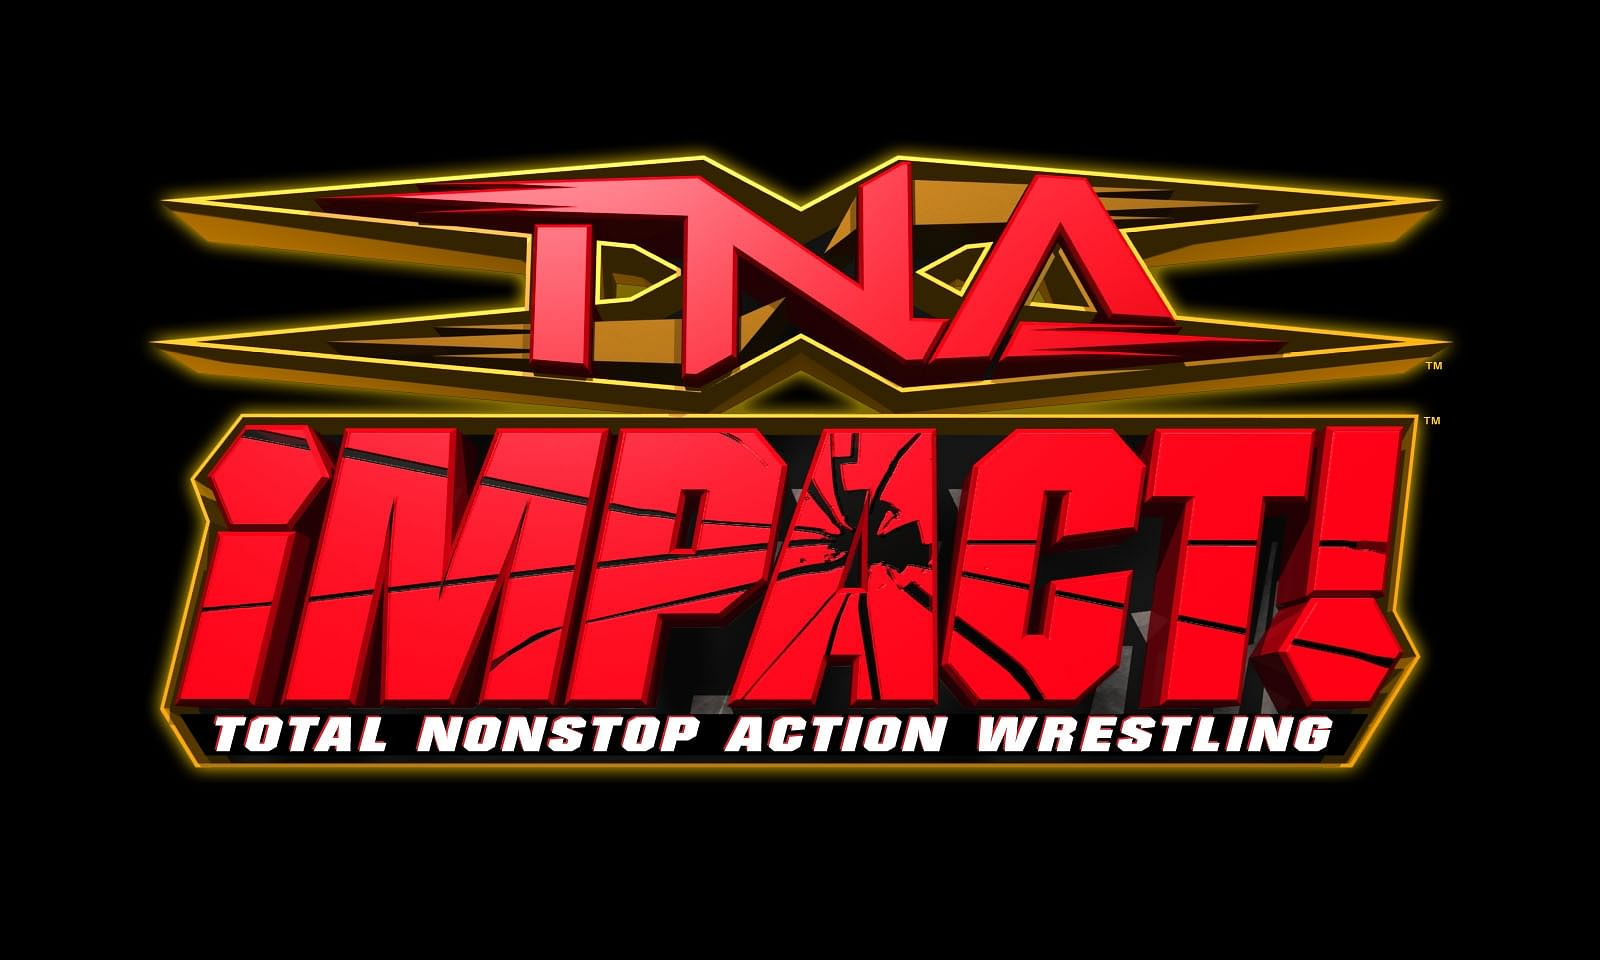 TNA Impact Wrestling made a debut on Destination America